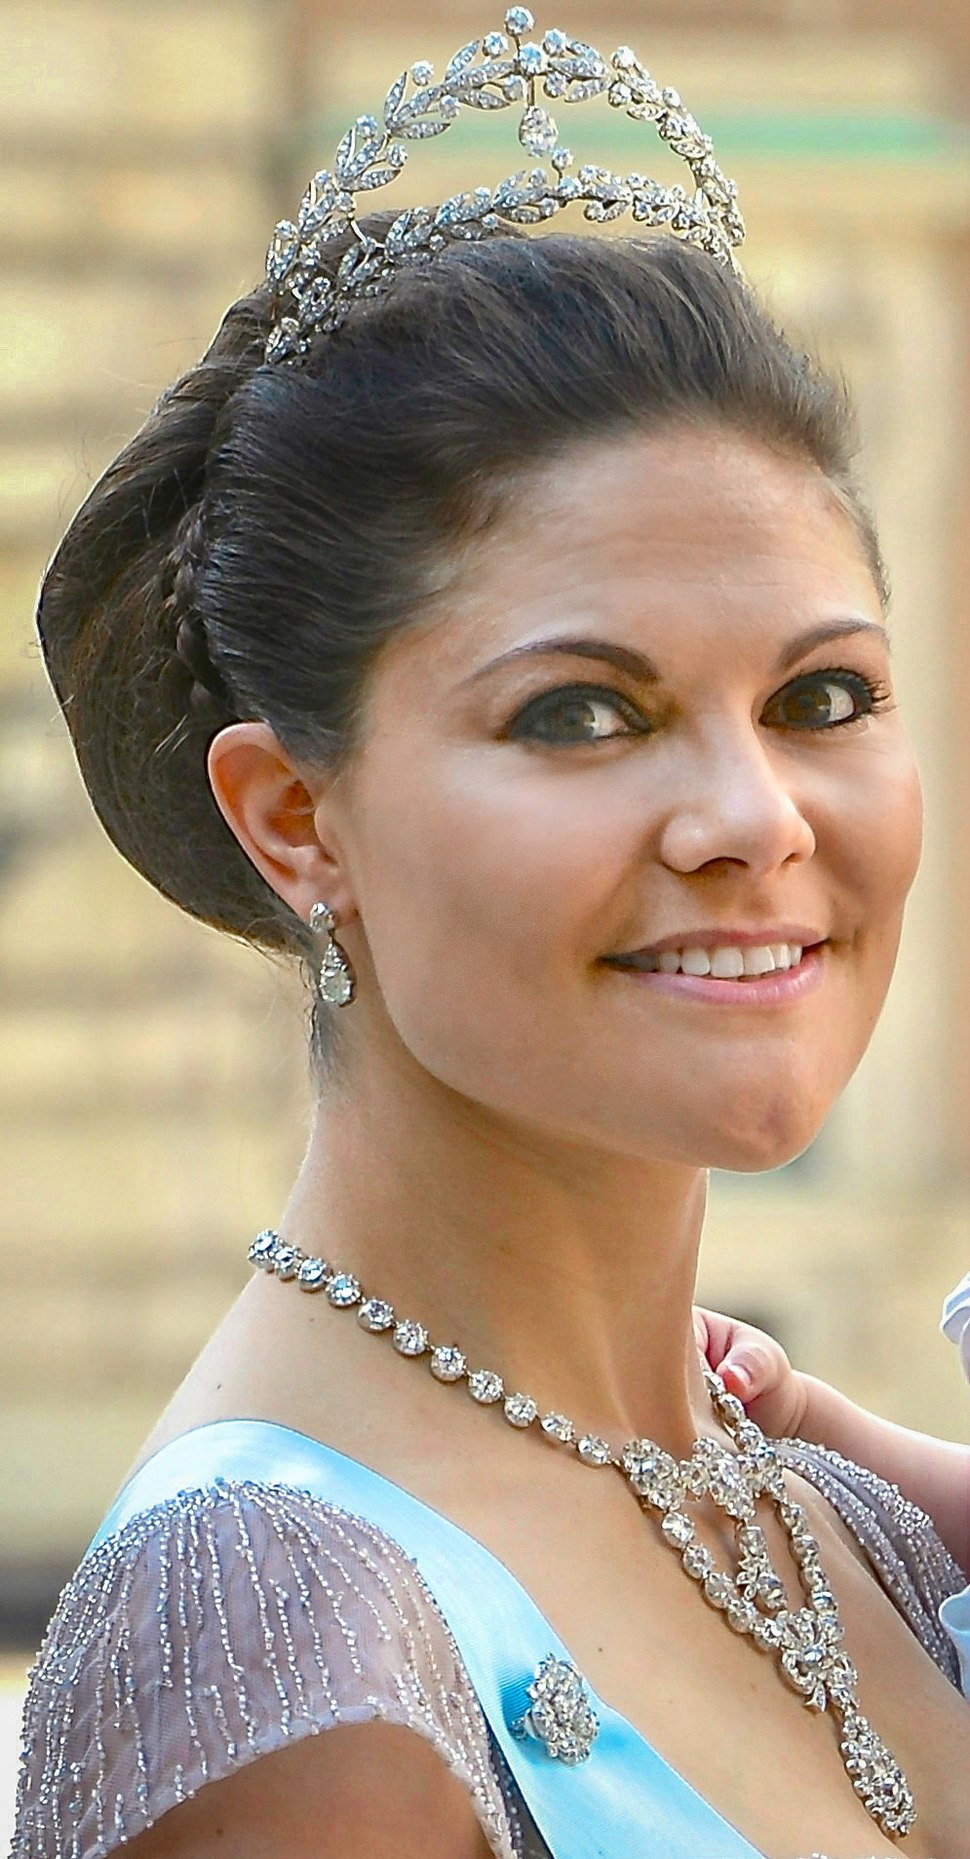 Crown Princess Victoria June 8, 2013 (cropped)